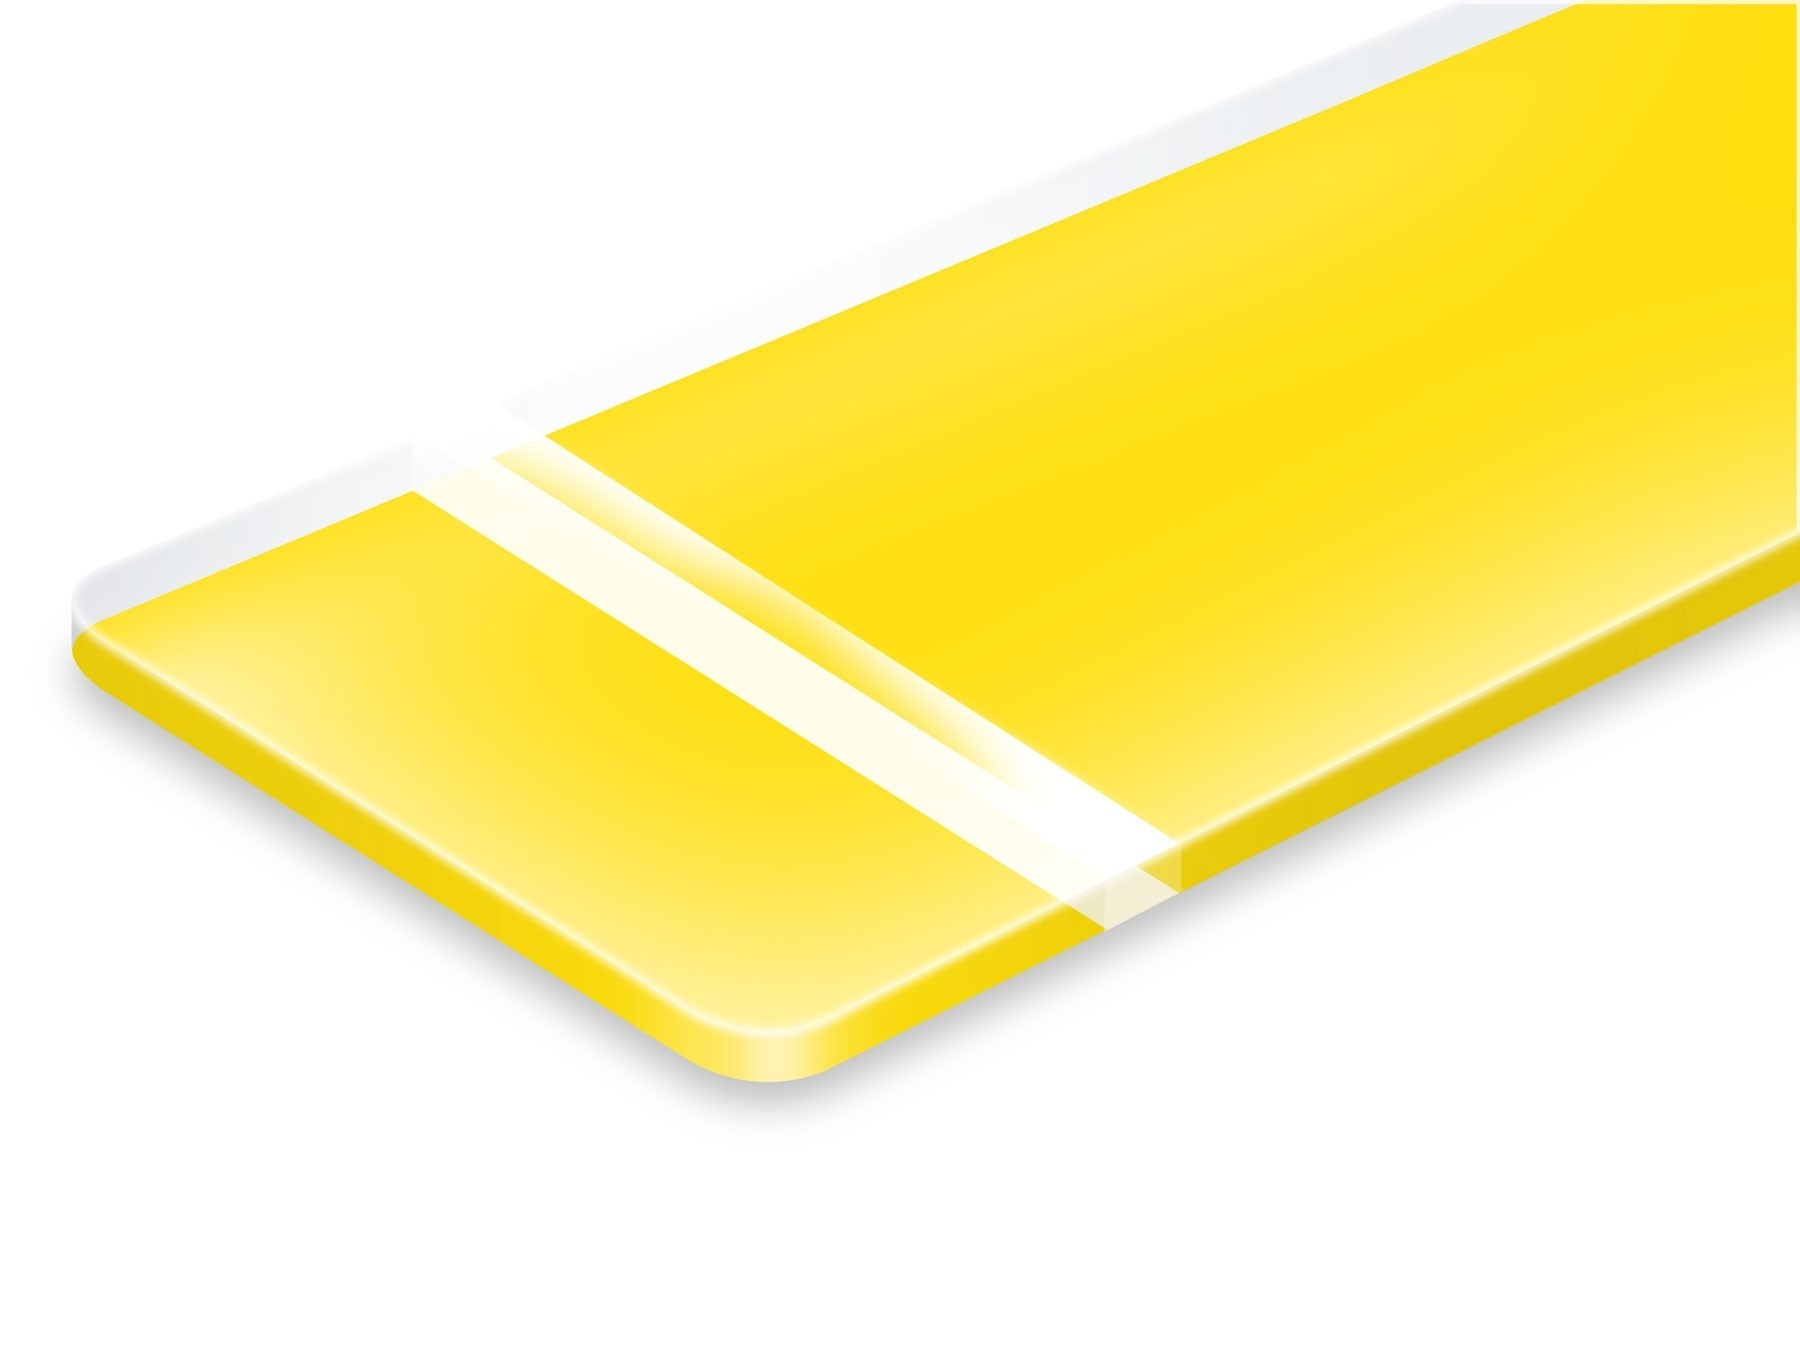 TroLase Reverse, Matte/Yellow, 2ply, 1.6 mm